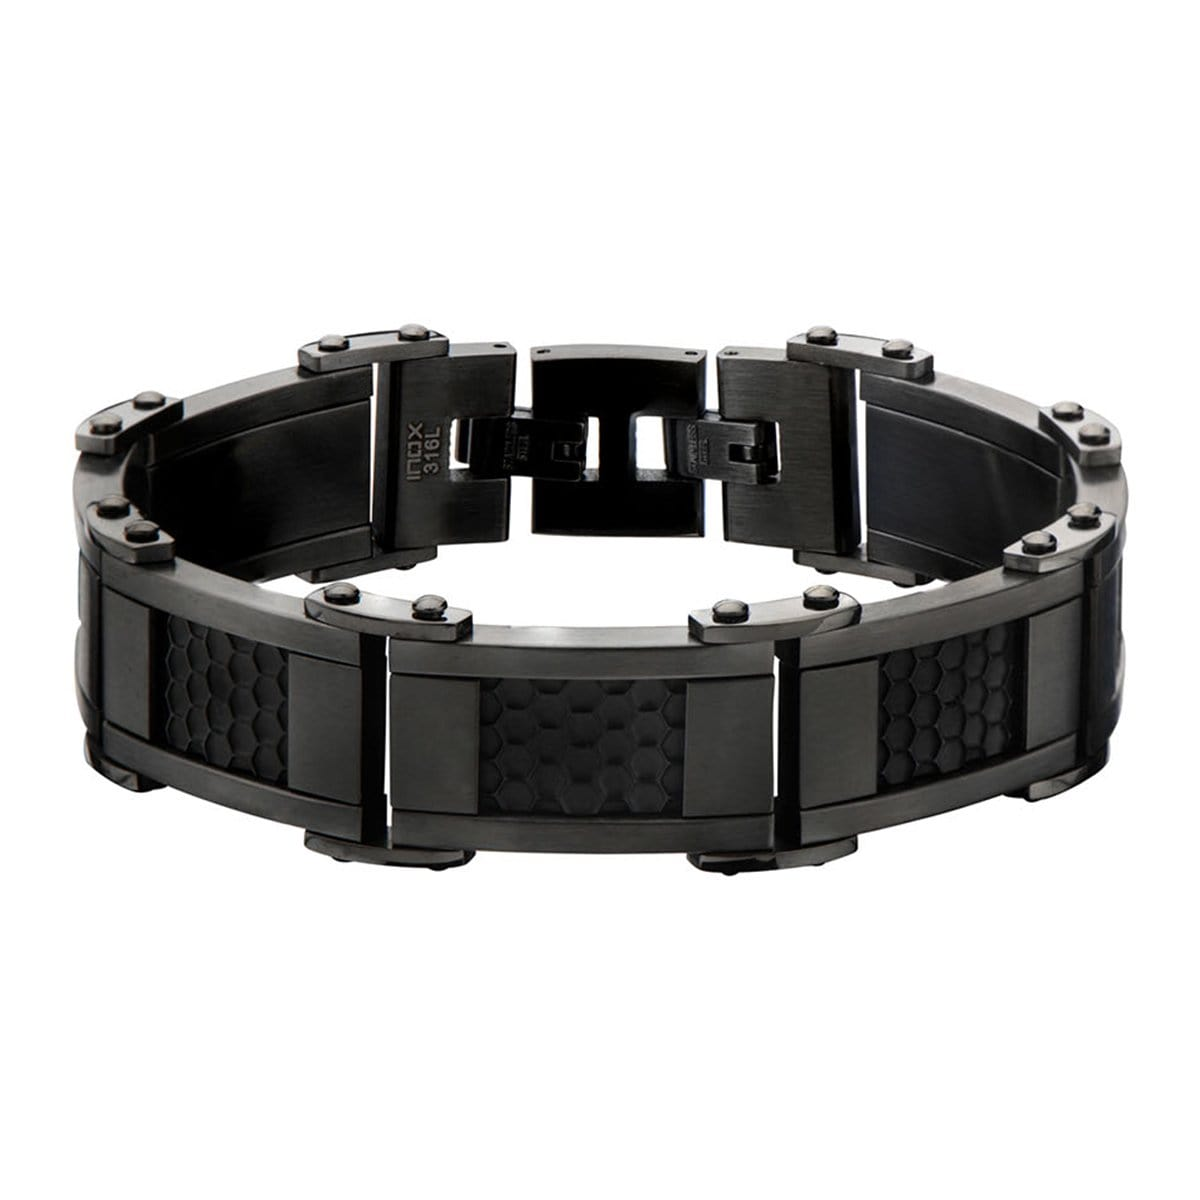 Black & Dark Gray Stainless Steel Adjustable Honeycomb Bracelet - Inox Jewelry India